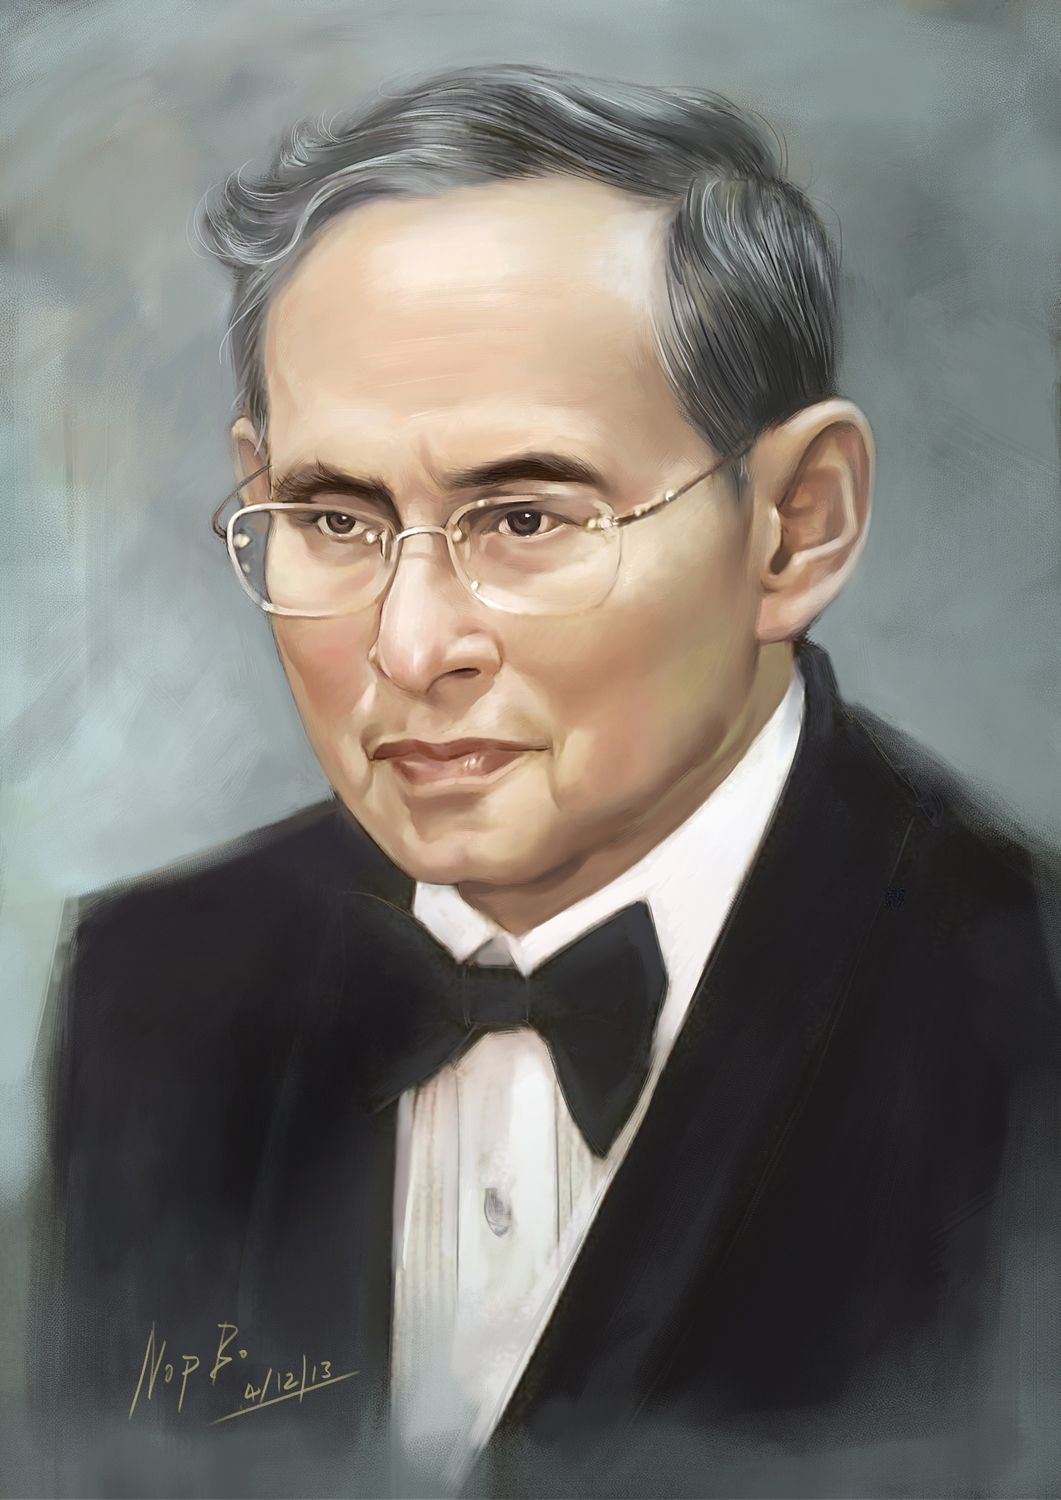 his majesty bhumibol adulyadej history essay Adulyadej and juan carlos of spain, in: journal of current southeast asian  affairs, 31  sation, the question this paper aims to answer is: what factors have  deter- mined the  bhumibol their version of thai culture and history, which was  essentially  they have also failed his majesty, who for decades has  demonstrated.